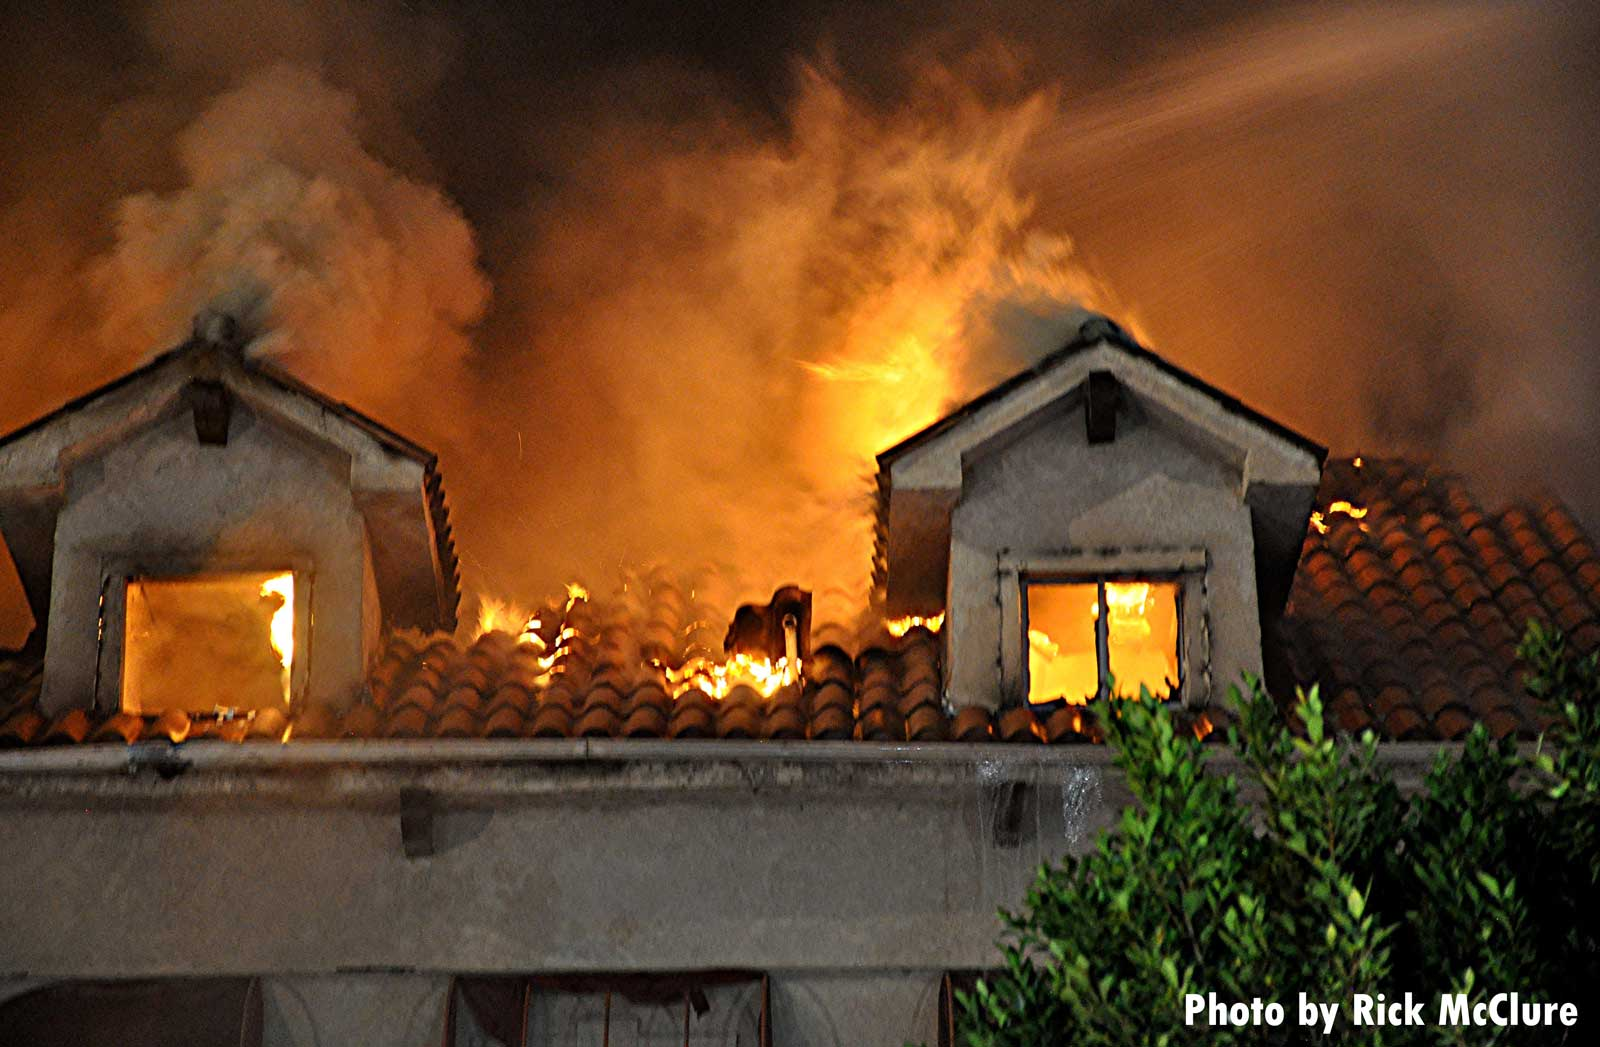 Fire and smoke lights up windows of the building